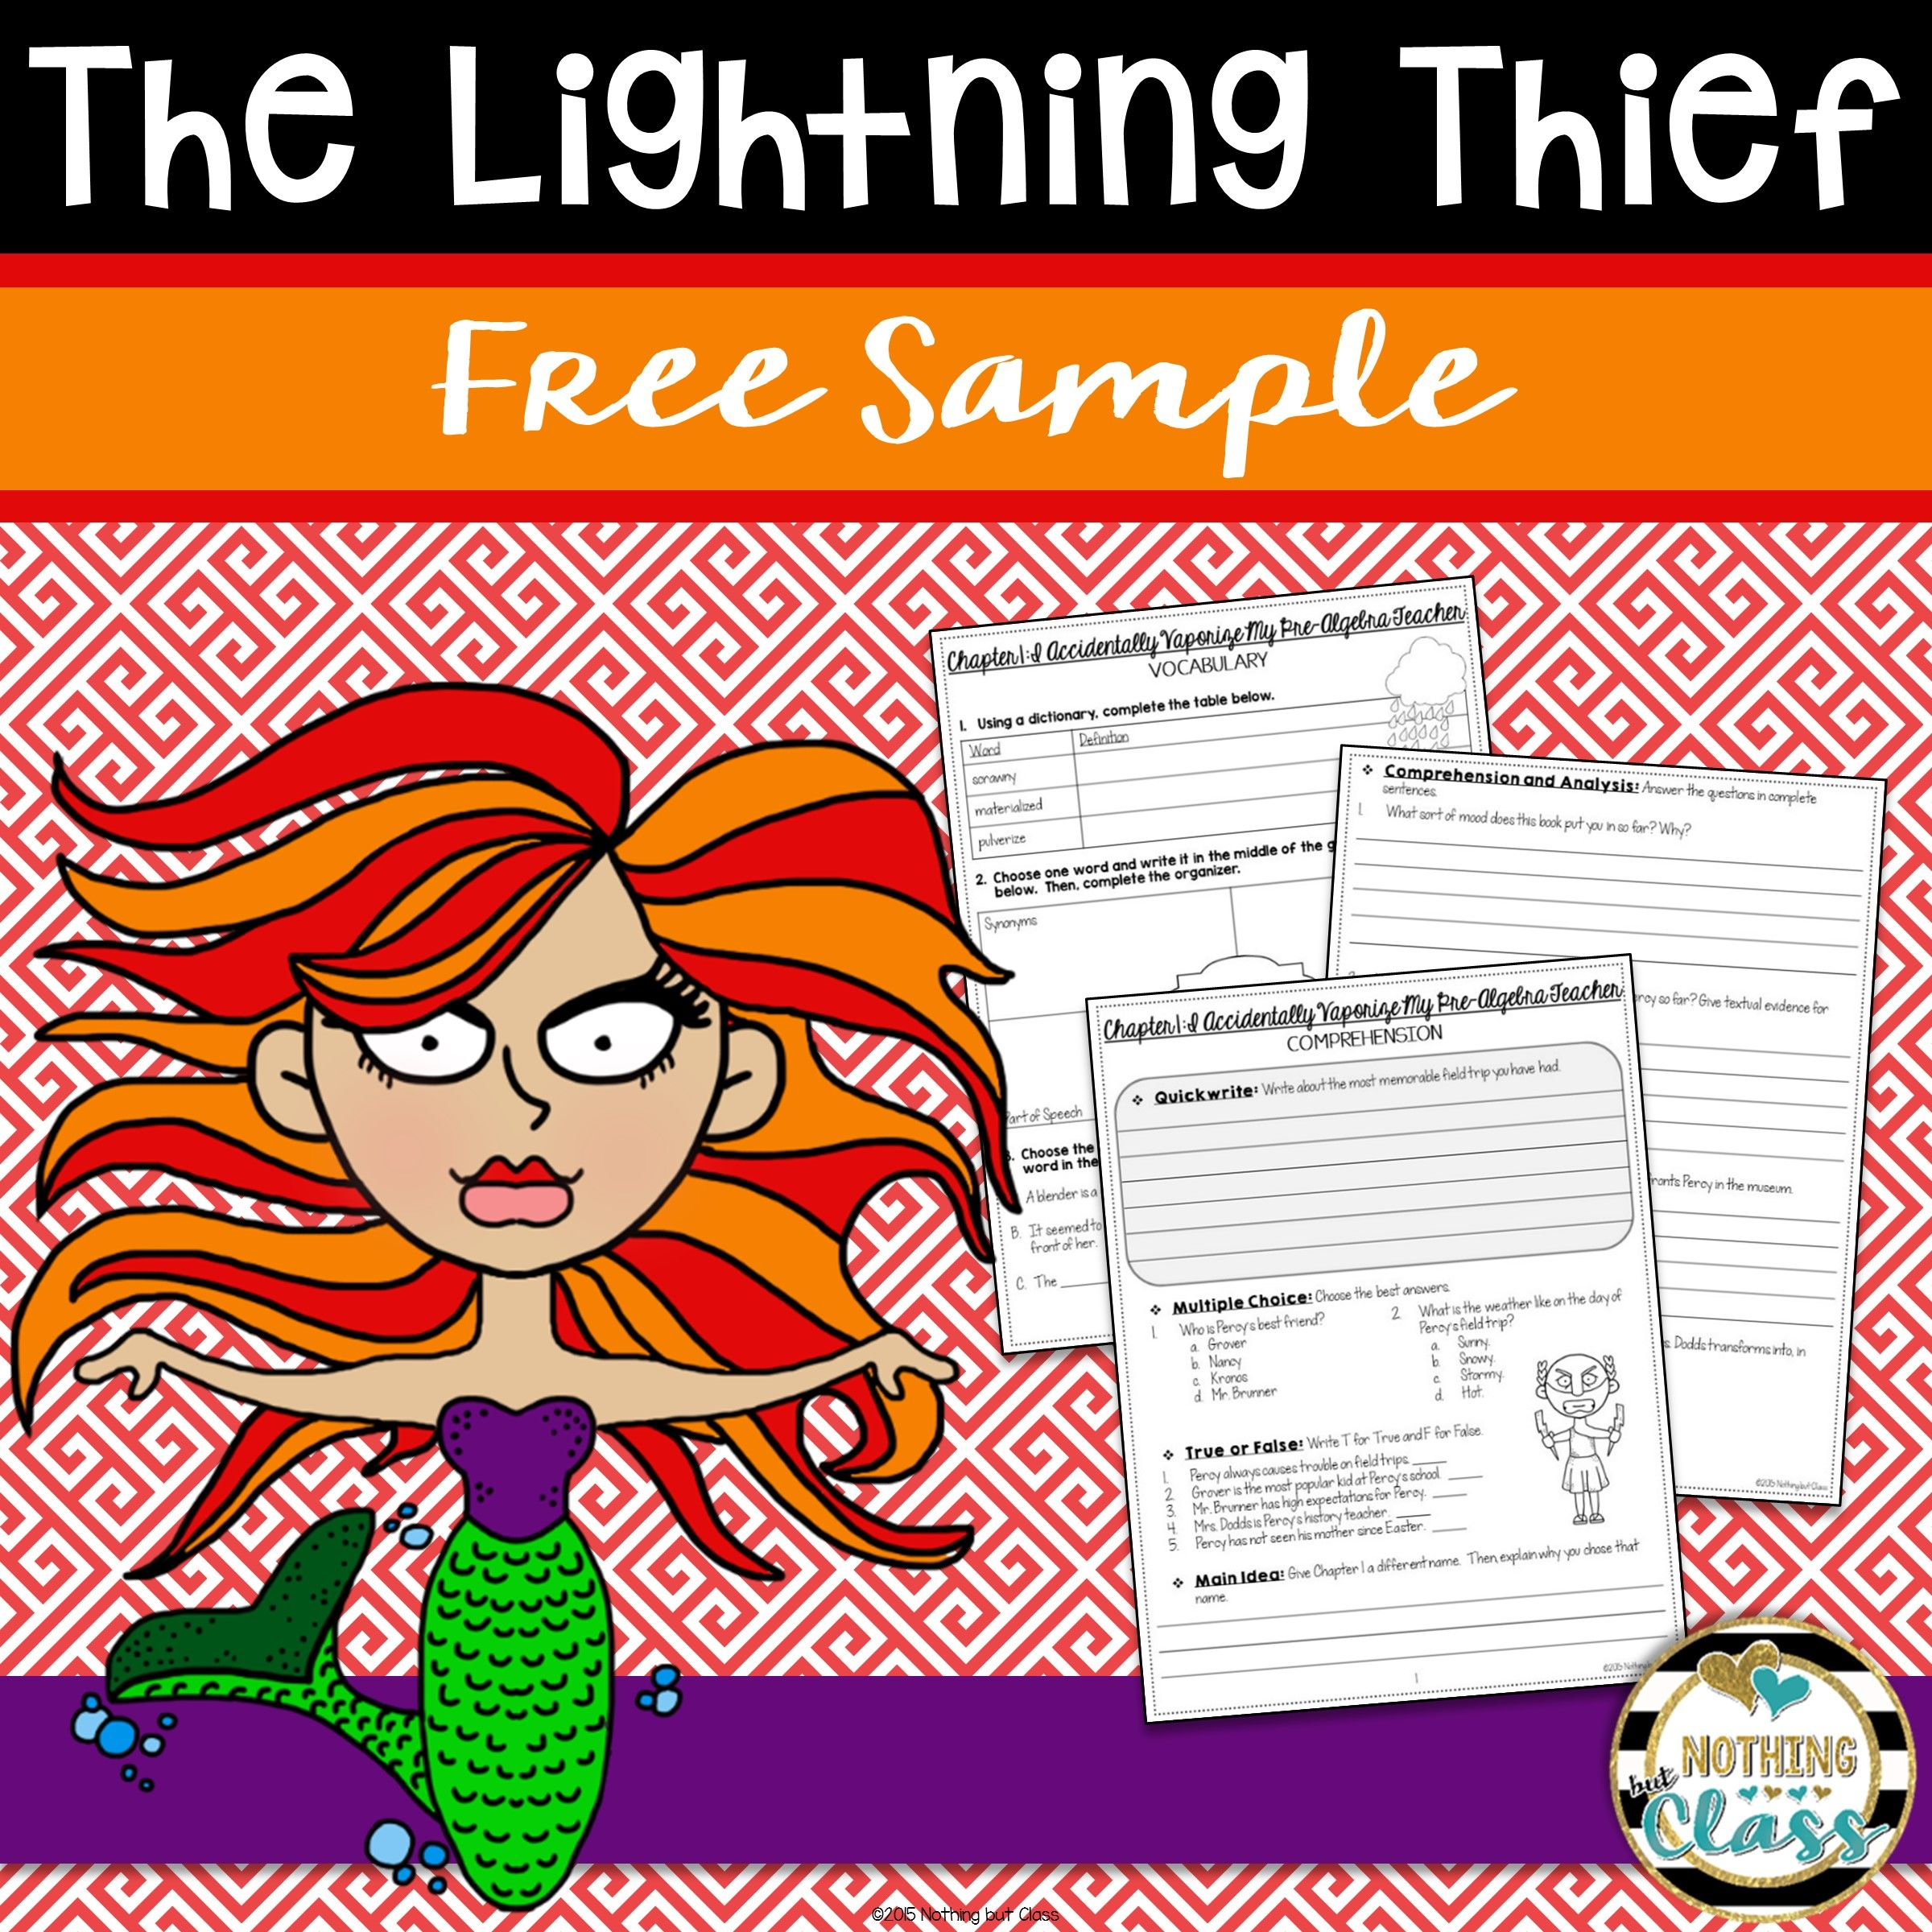 The Lightning Thief Novel Study Unit Free Sample